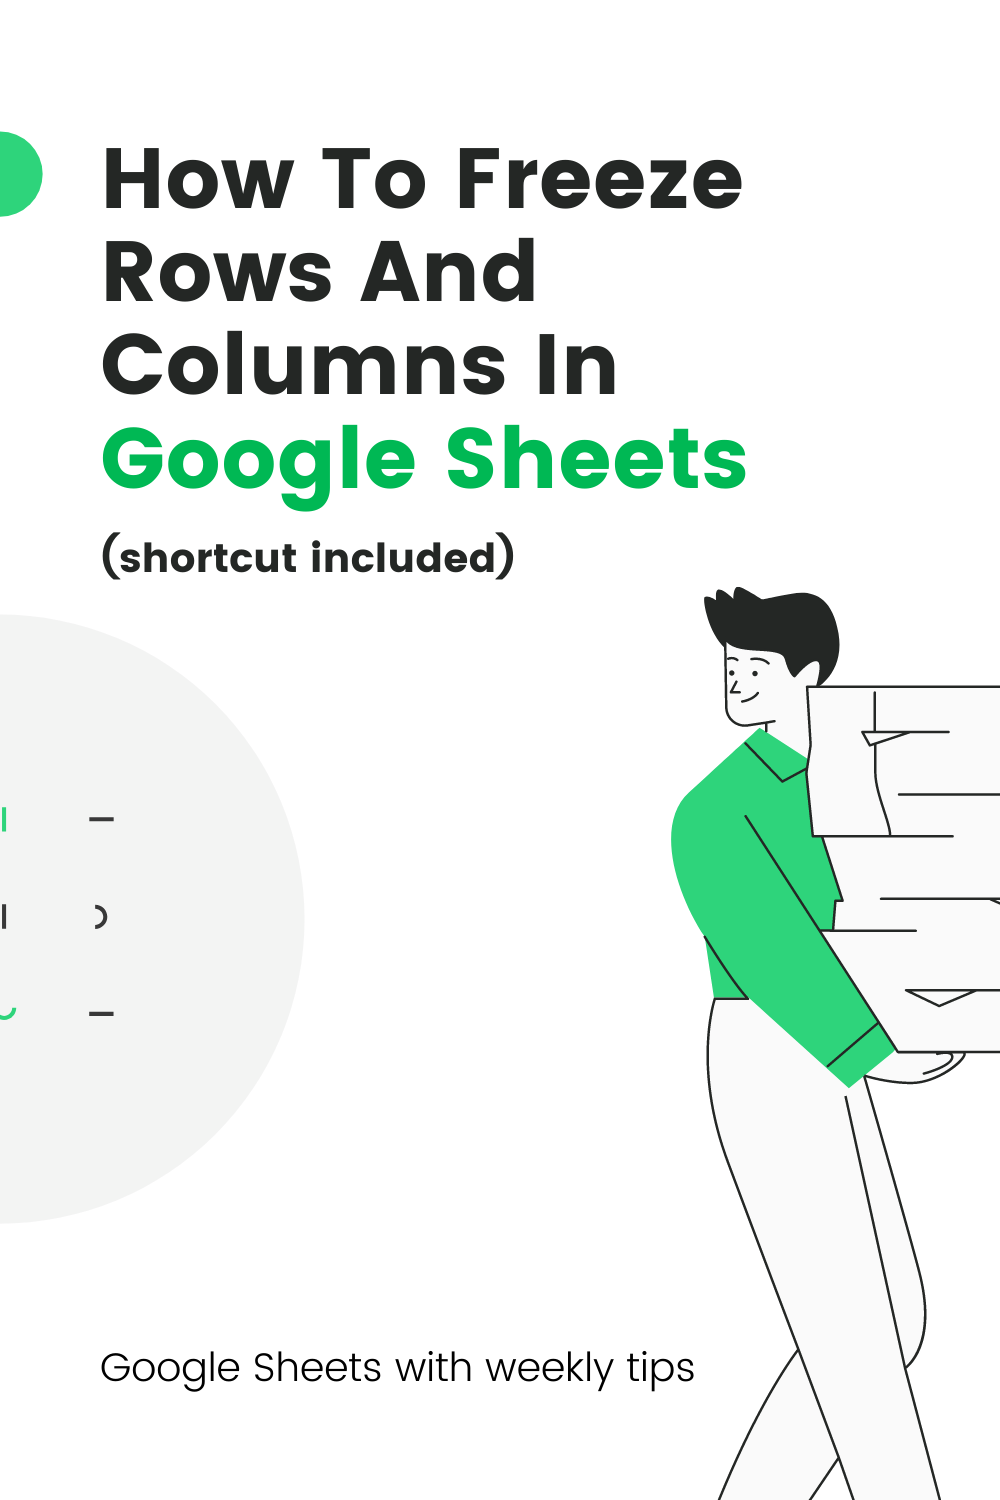 How To Freeze Cells Rows And Columns In Google Sheets Shortcut Included